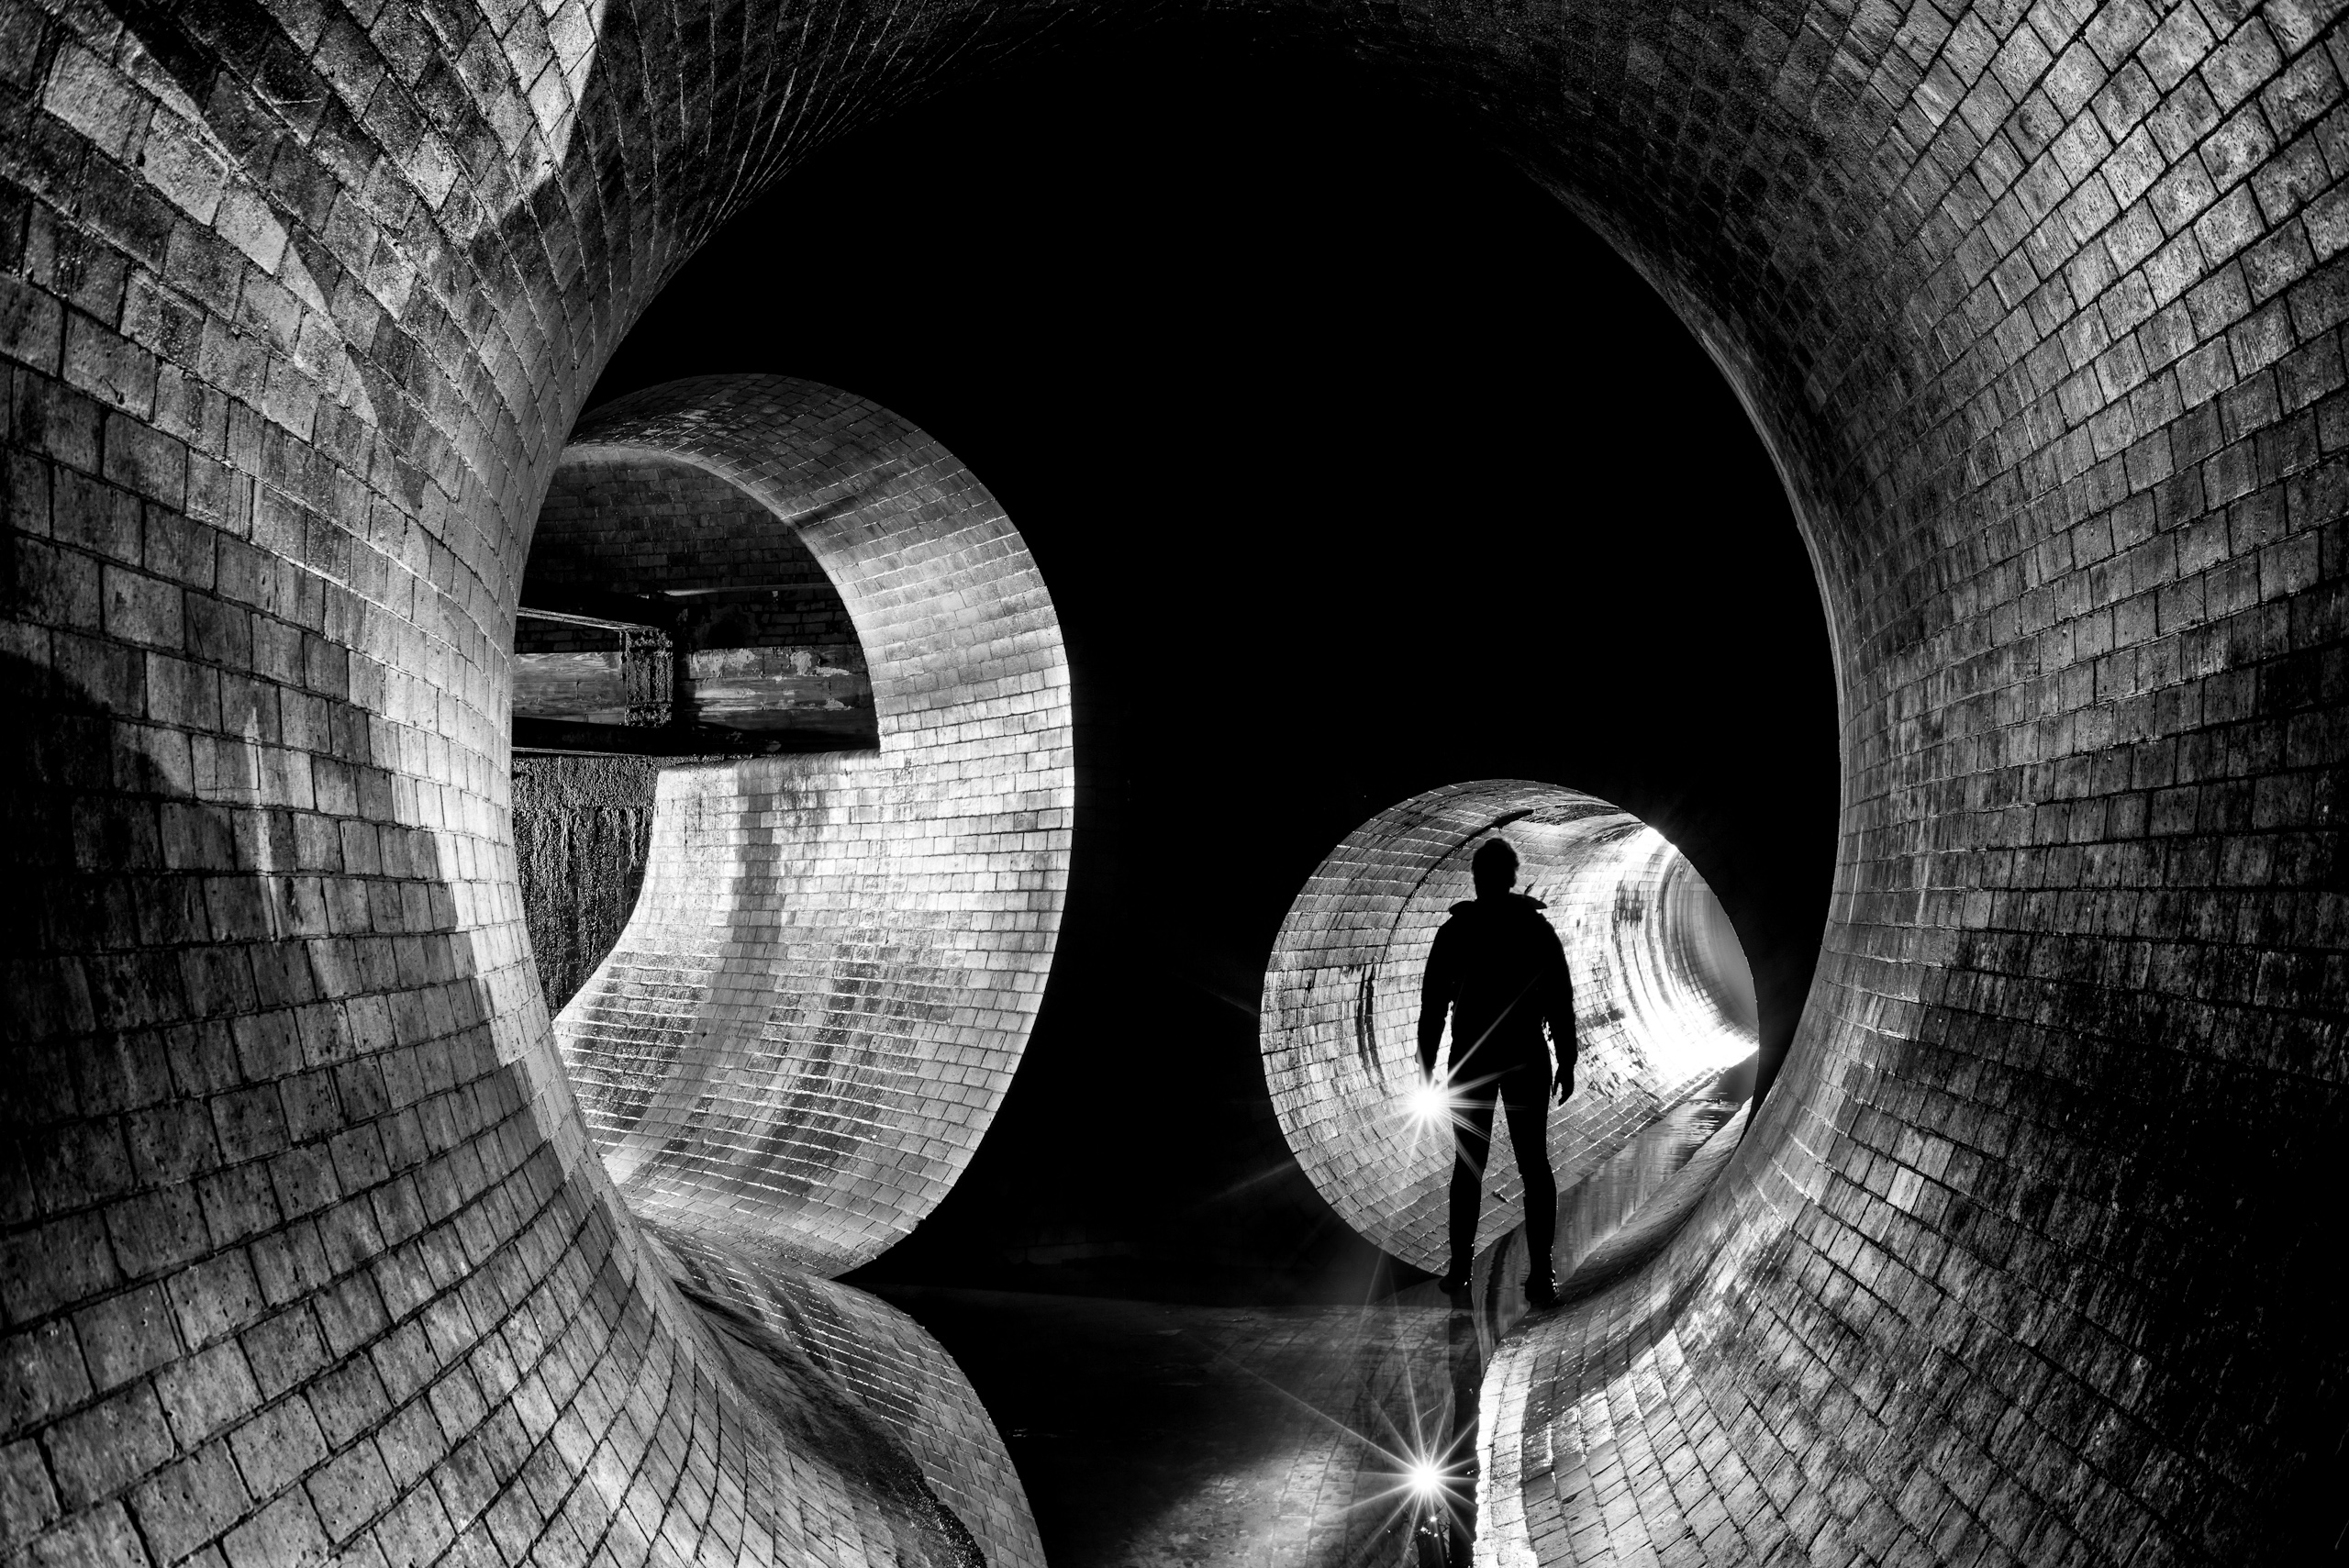 Brighton sewers